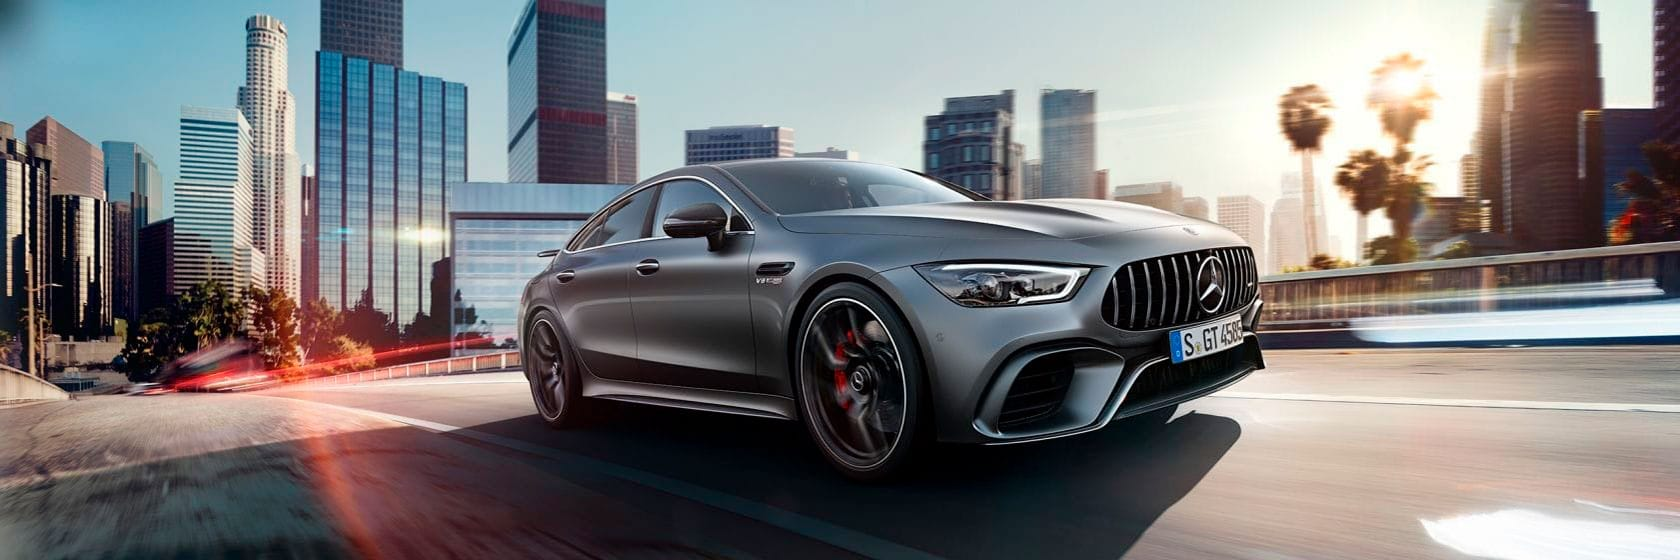 Мощность Mercedes AMG GT 4-door Coupe